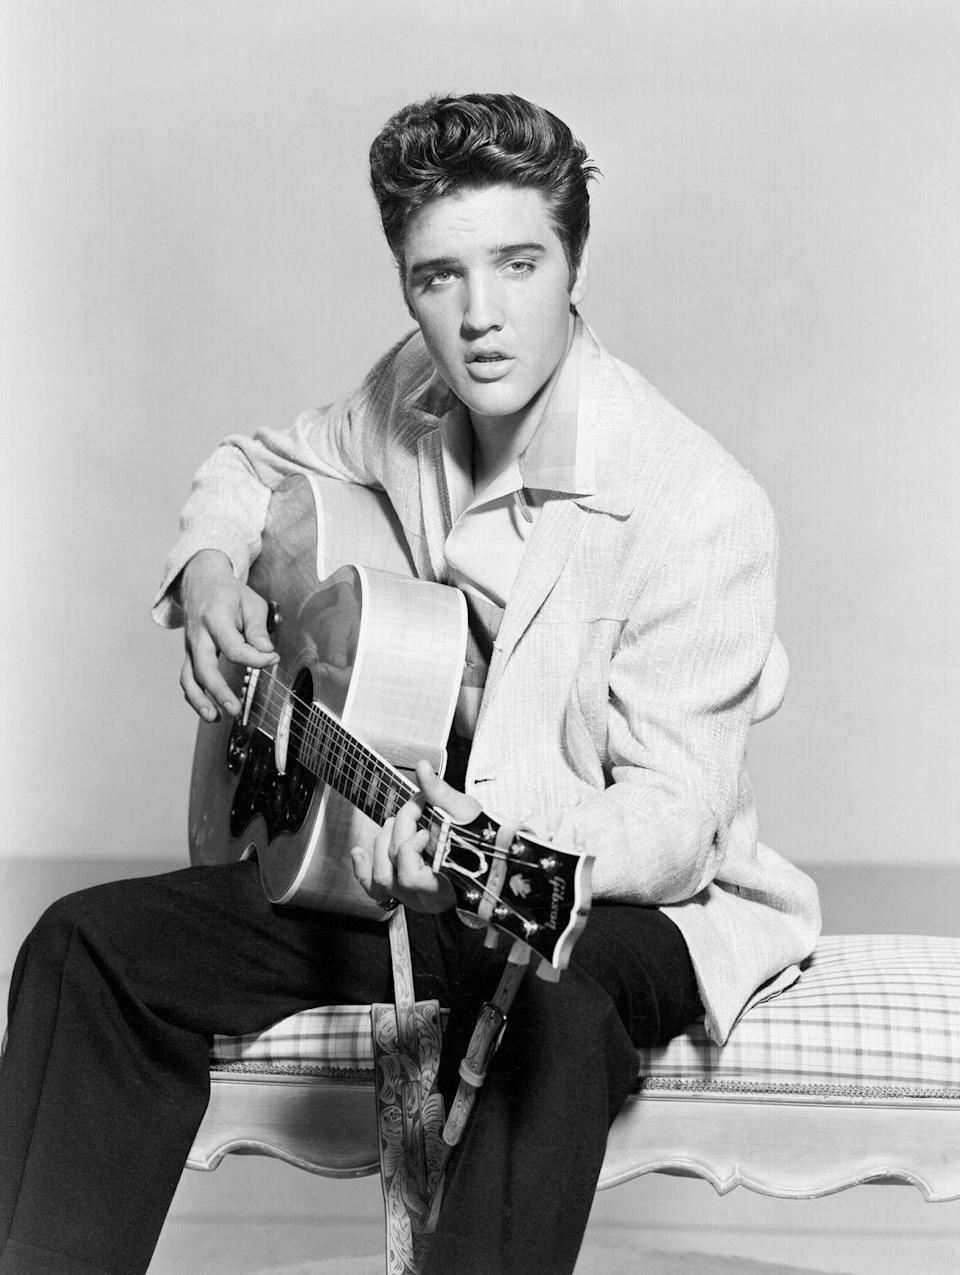 "<p>The King of Rock and Roll had 18 #1 hits in his career, but struck out on 11 of his <a href=""https://www.grammy.com/grammys/artists/elvis-presley"" rel=""nofollow noopener"" target=""_blank"" data-ylk=""slk:14 nominations"" class=""link rapid-noclick-resp"">14 nominations</a>. The record for the most Grammy wins actually belongs to <a href=""https://www.grammy.com/grammys/artists/georg-solti"" rel=""nofollow noopener"" target=""_blank"" data-ylk=""slk:George Solti"" class=""link rapid-noclick-resp"">George Solti</a>, the longtime leader of Chicago Symphony Orchestra, with 31 awards to his name.</p><p><strong>RELATED: </strong><a href=""https://www.goodhousekeeping.com/life/entertainment/g23120214/best-love-songs/"" rel=""nofollow noopener"" target=""_blank"" data-ylk=""slk:The 35 Best Love Songs of All Time"" class=""link rapid-noclick-resp"">The 35 Best Love Songs of All Time</a></p>"